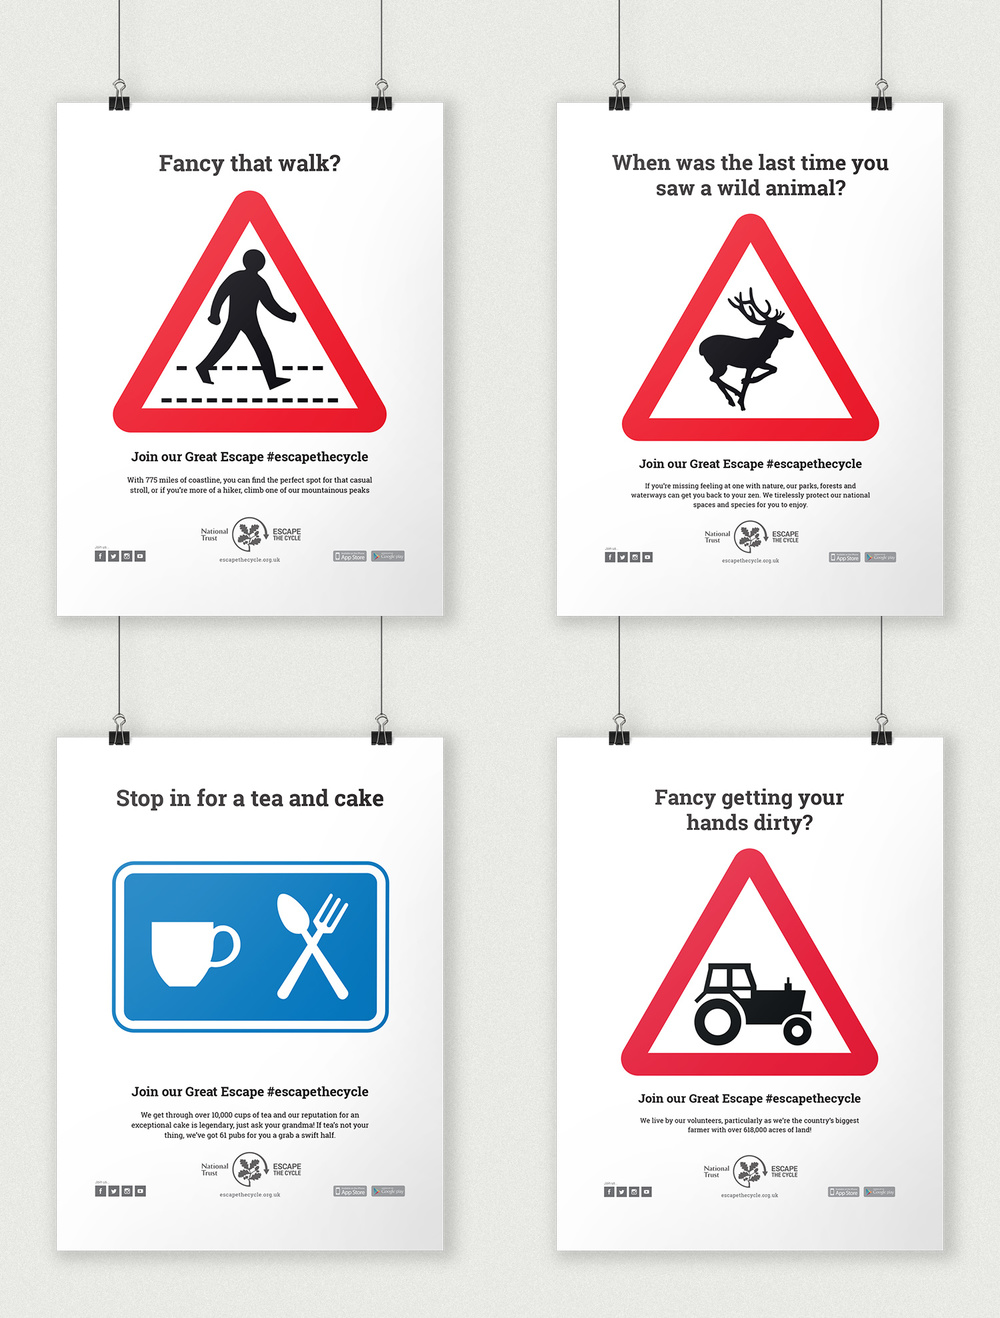 Escape the Cycle Print Signage Advertising and Marketing Campaign — D&AD National Trust